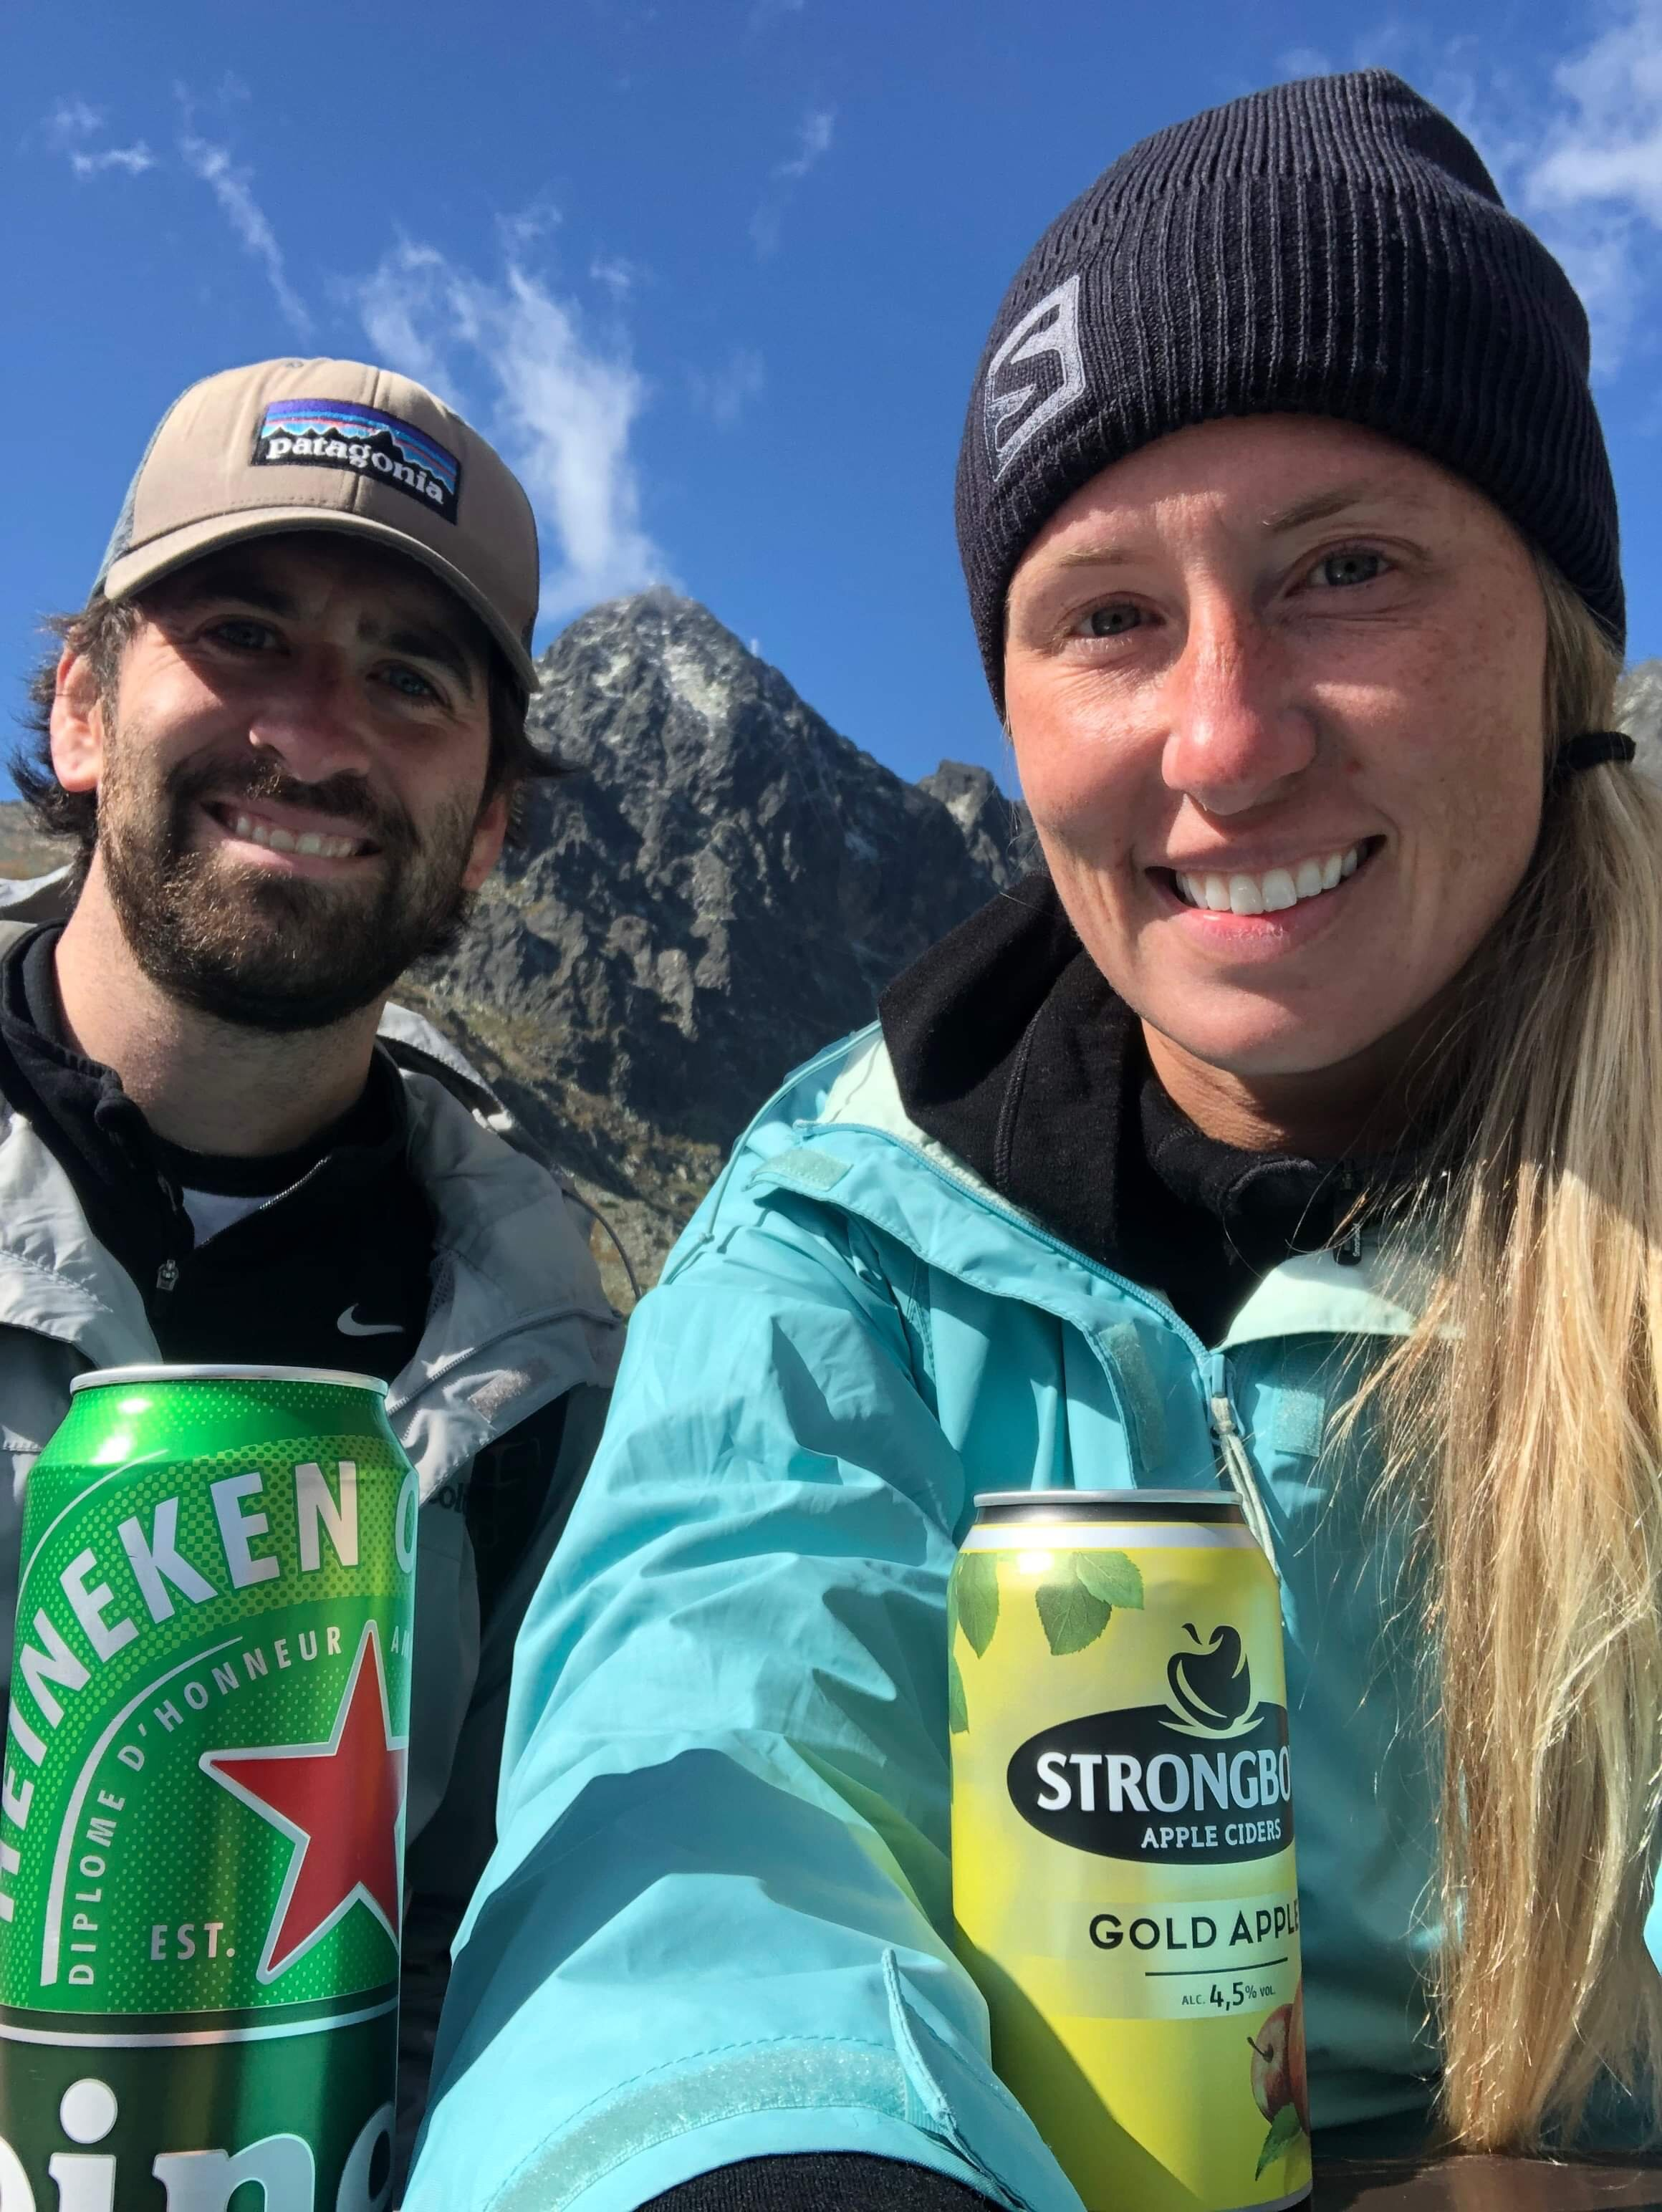 Copy of Thank you Michaela! We enjoyed your beer donation at the top of a peak in Slovakia. A well deserved reward after a long hike.